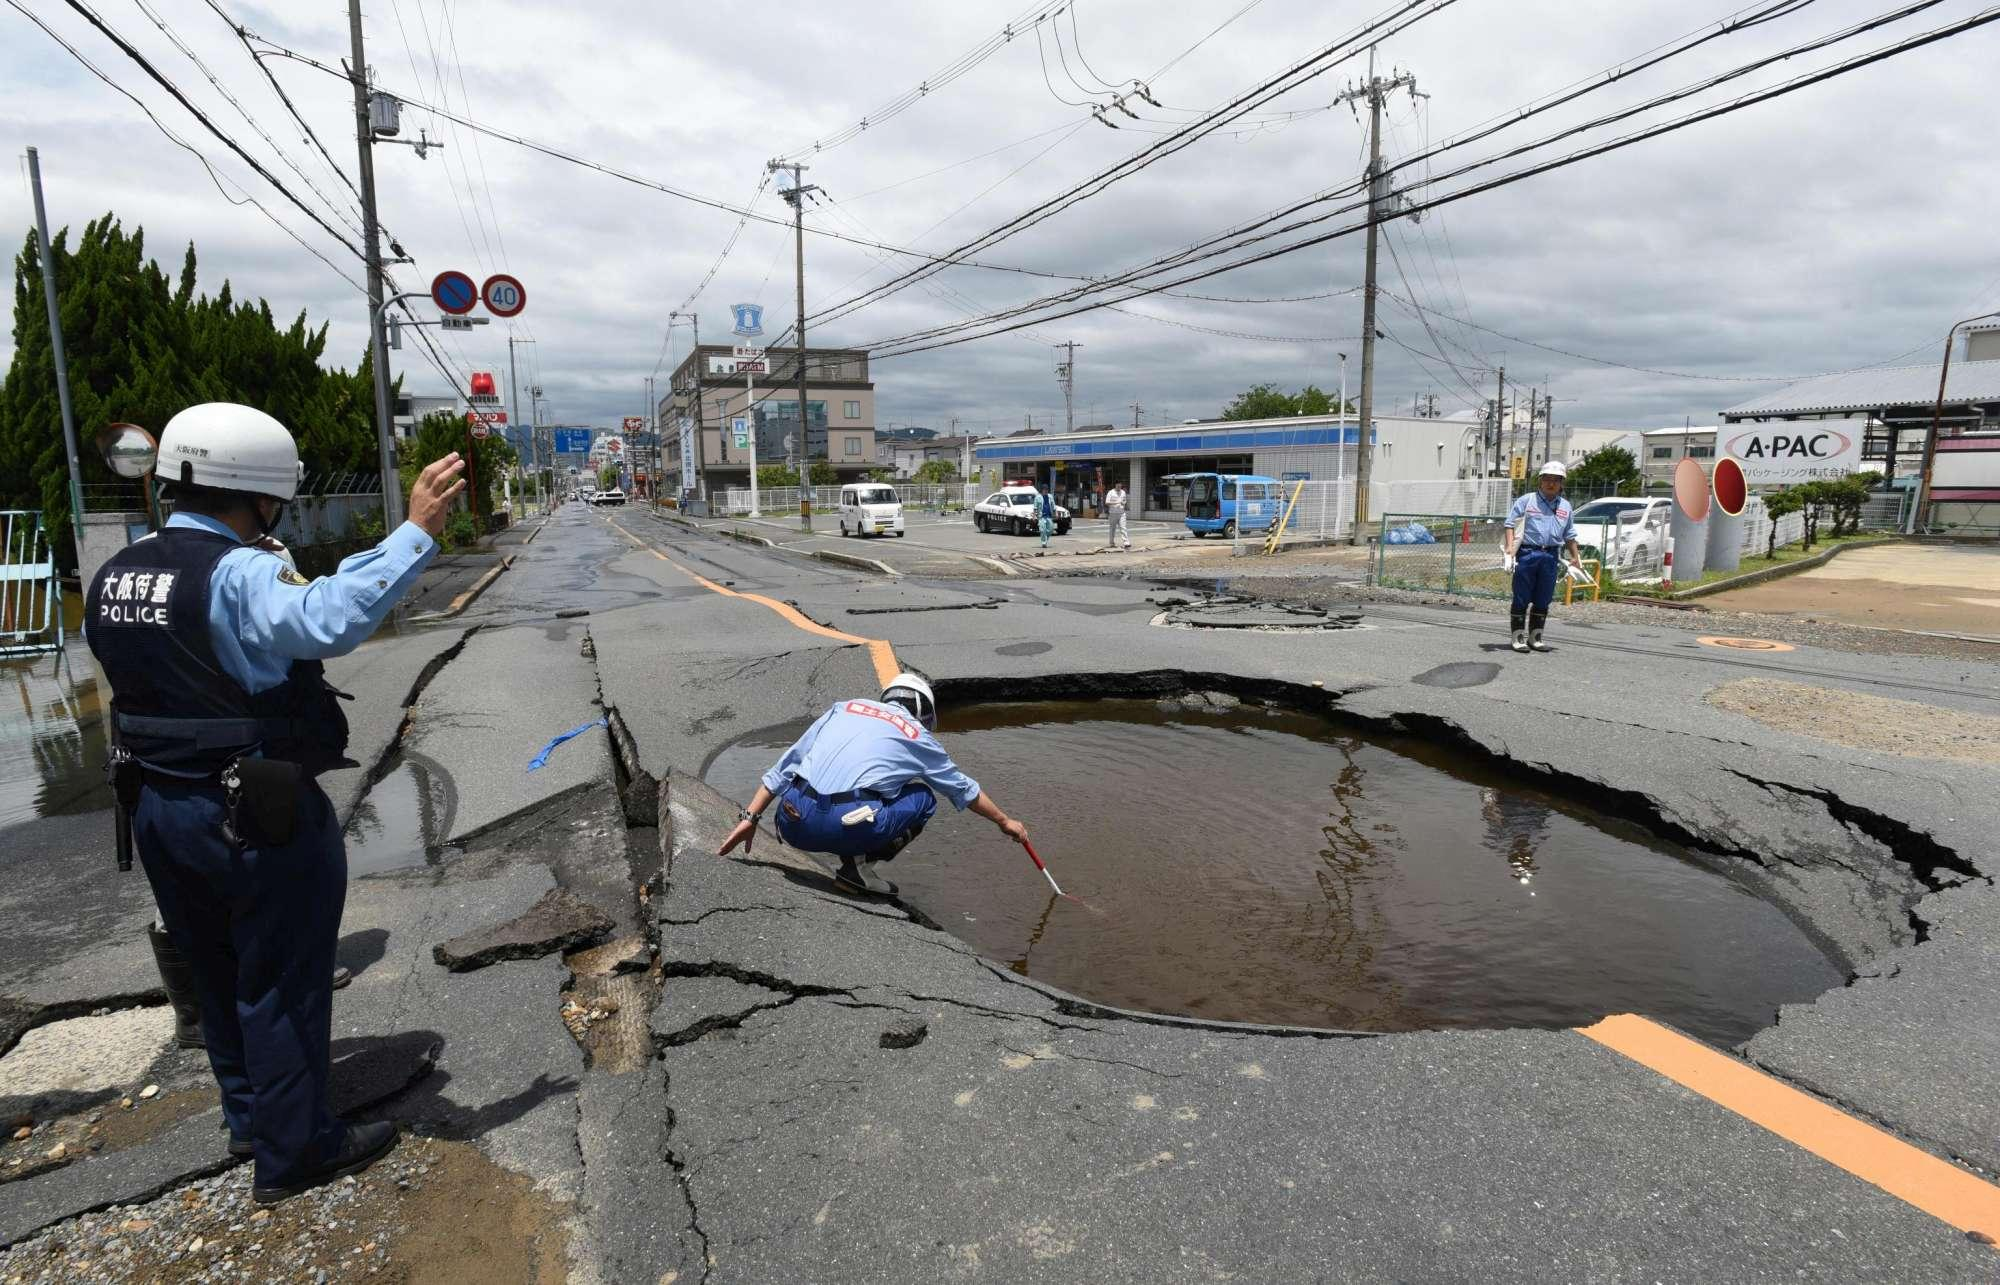 Giappone, terremoto fortissimo a Osaka